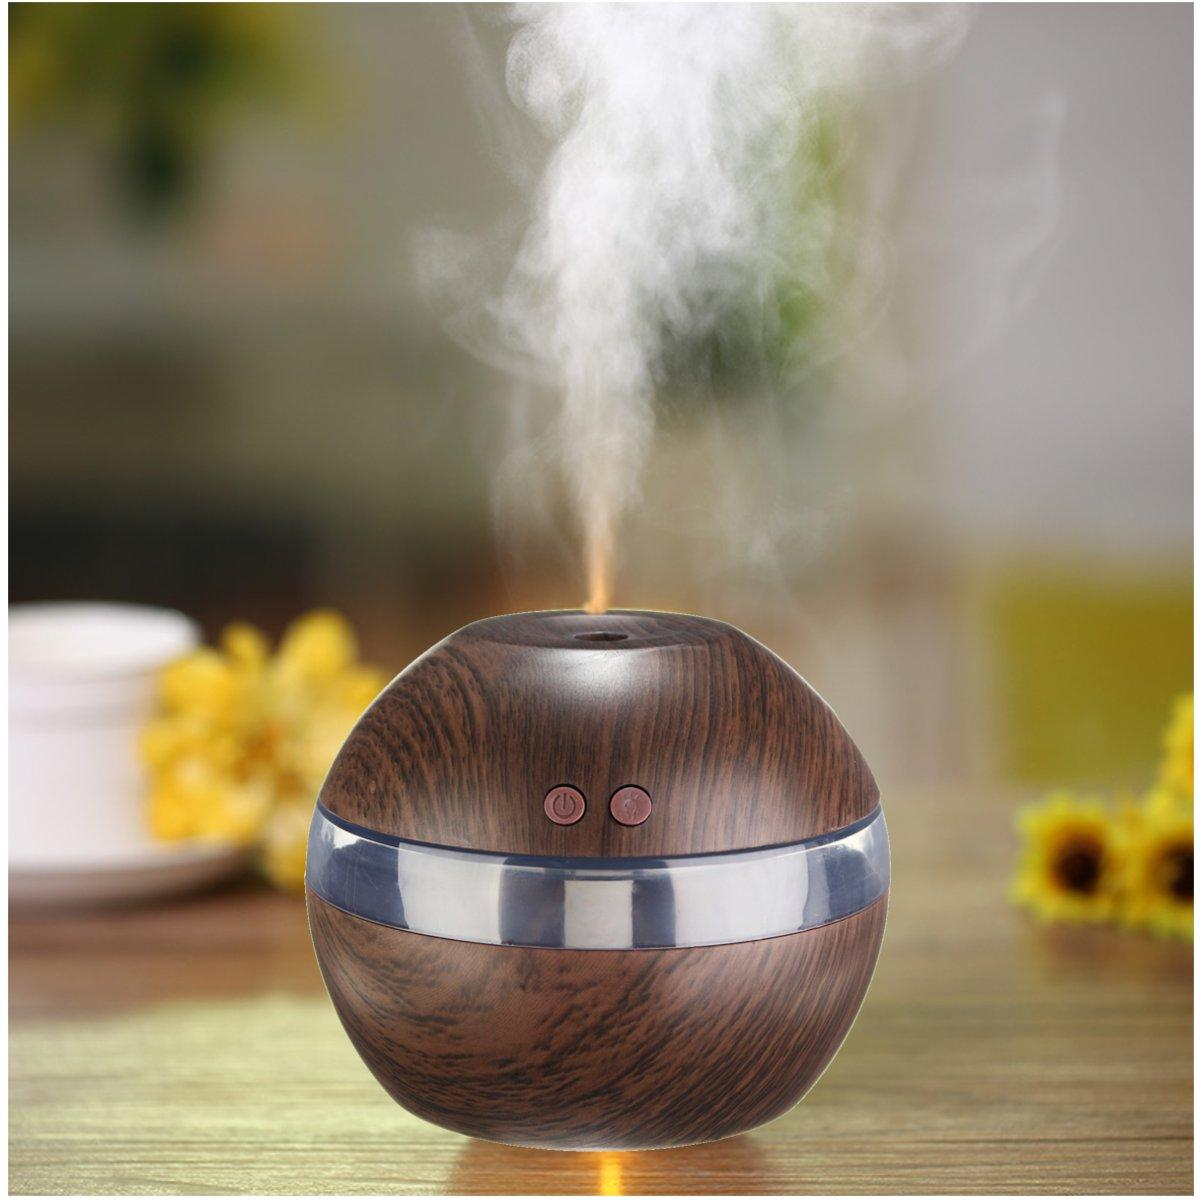 USB LED Ultrasonic Aroma Humidifier Oil Diffuser Air Mist Aromatherapy Purifier